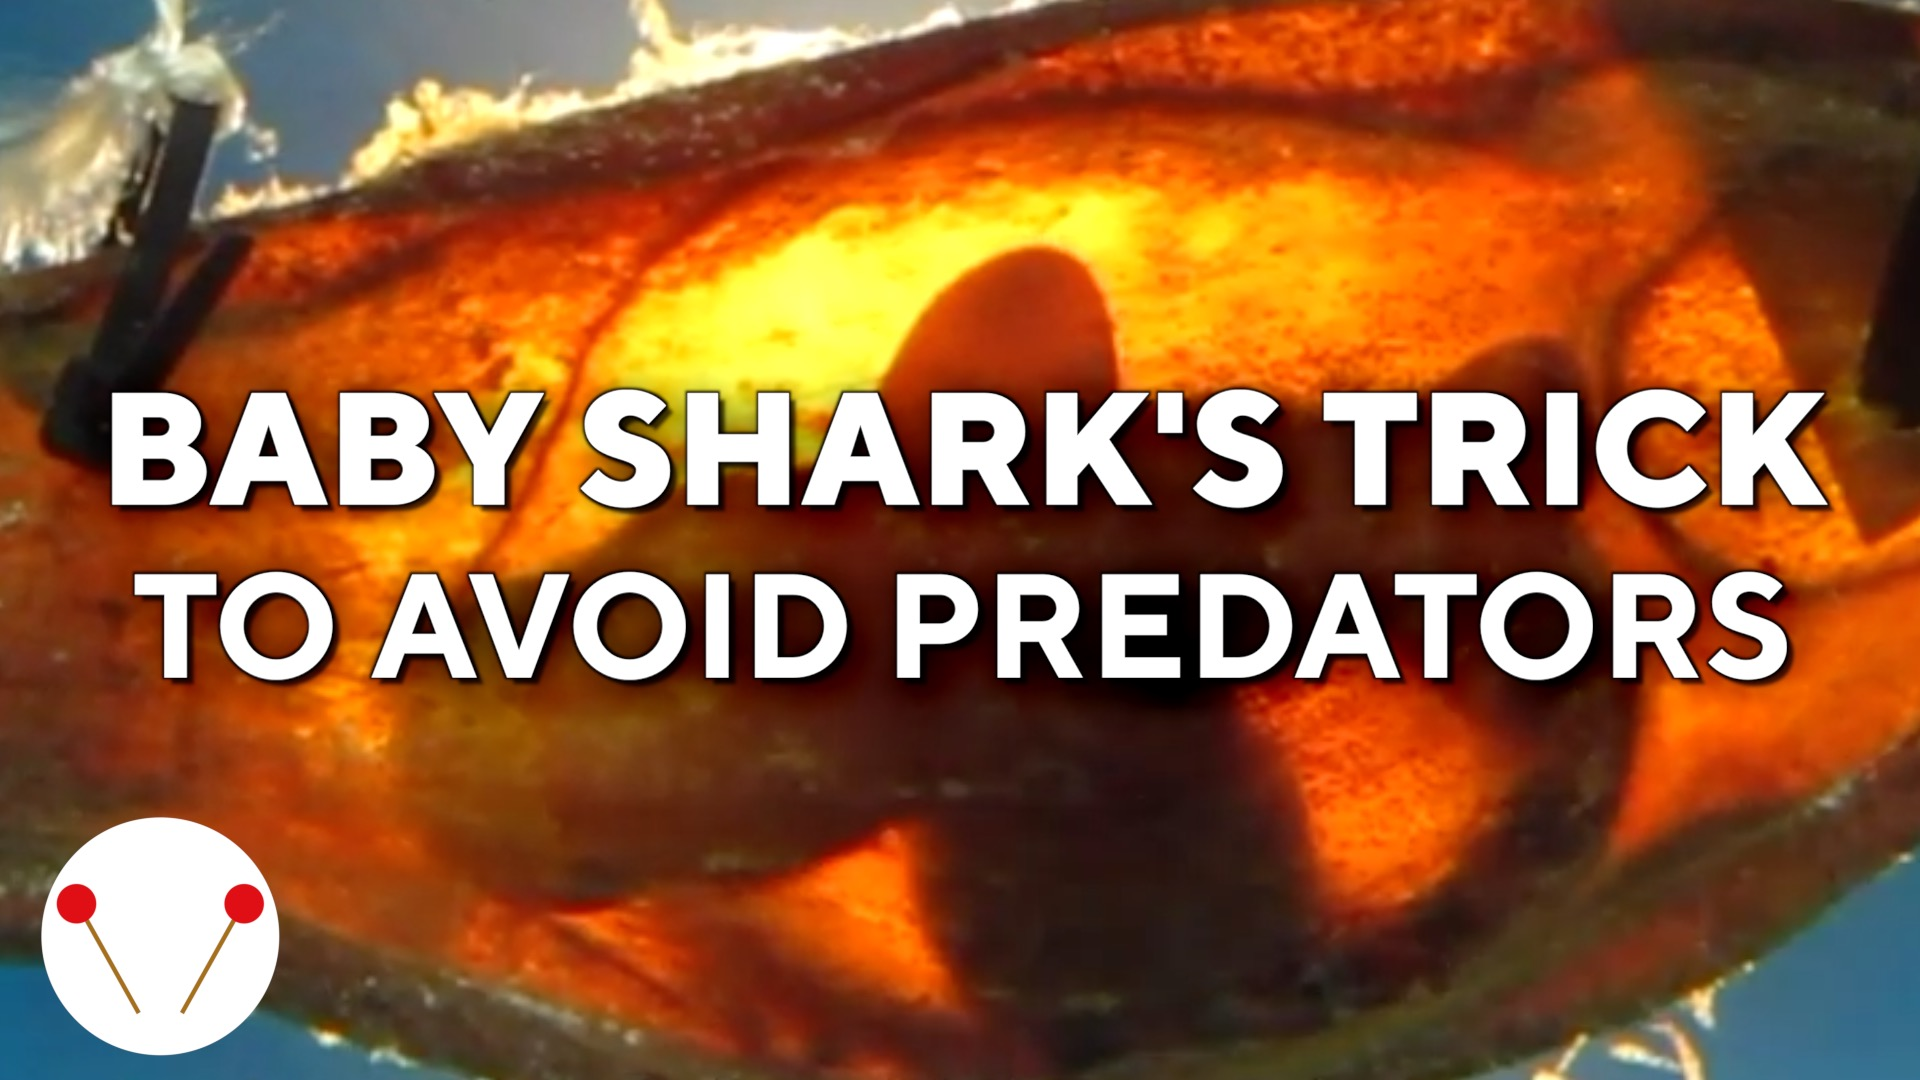 Baby shark in egg case gets quiet amid predators